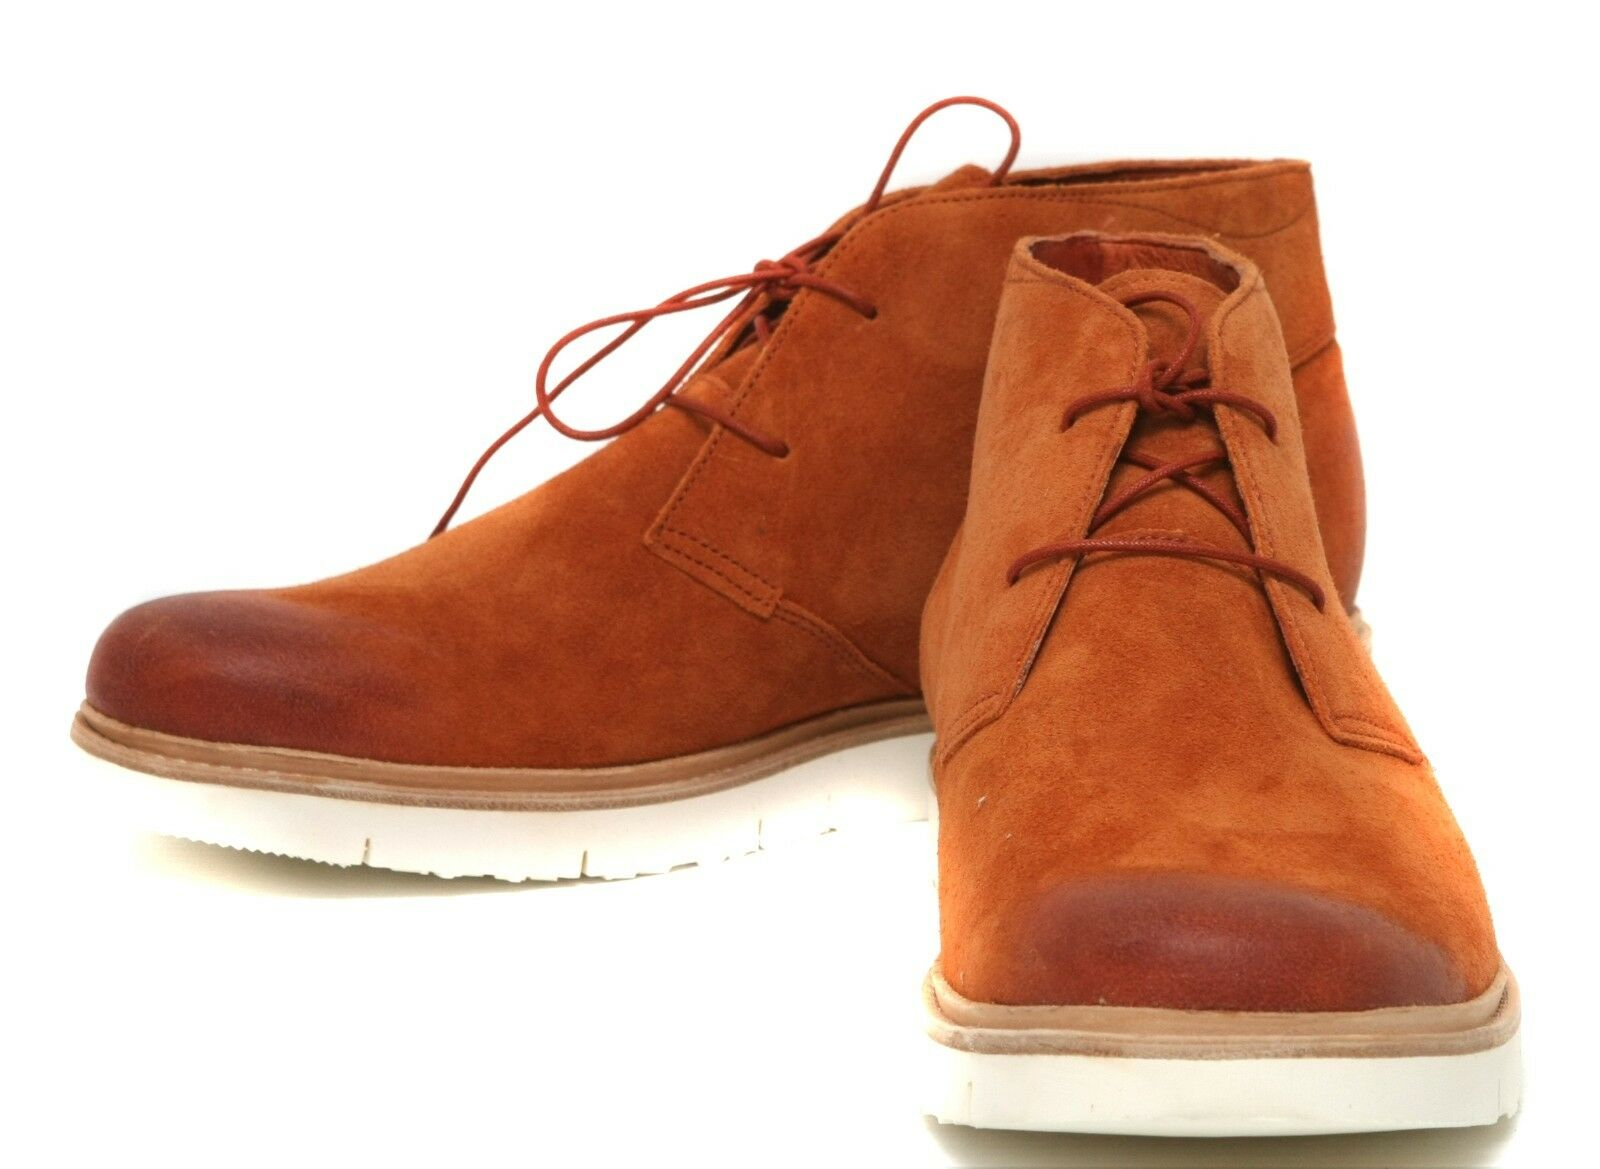 New TSUBO Men's Halian Boots suede  shoes  size 12